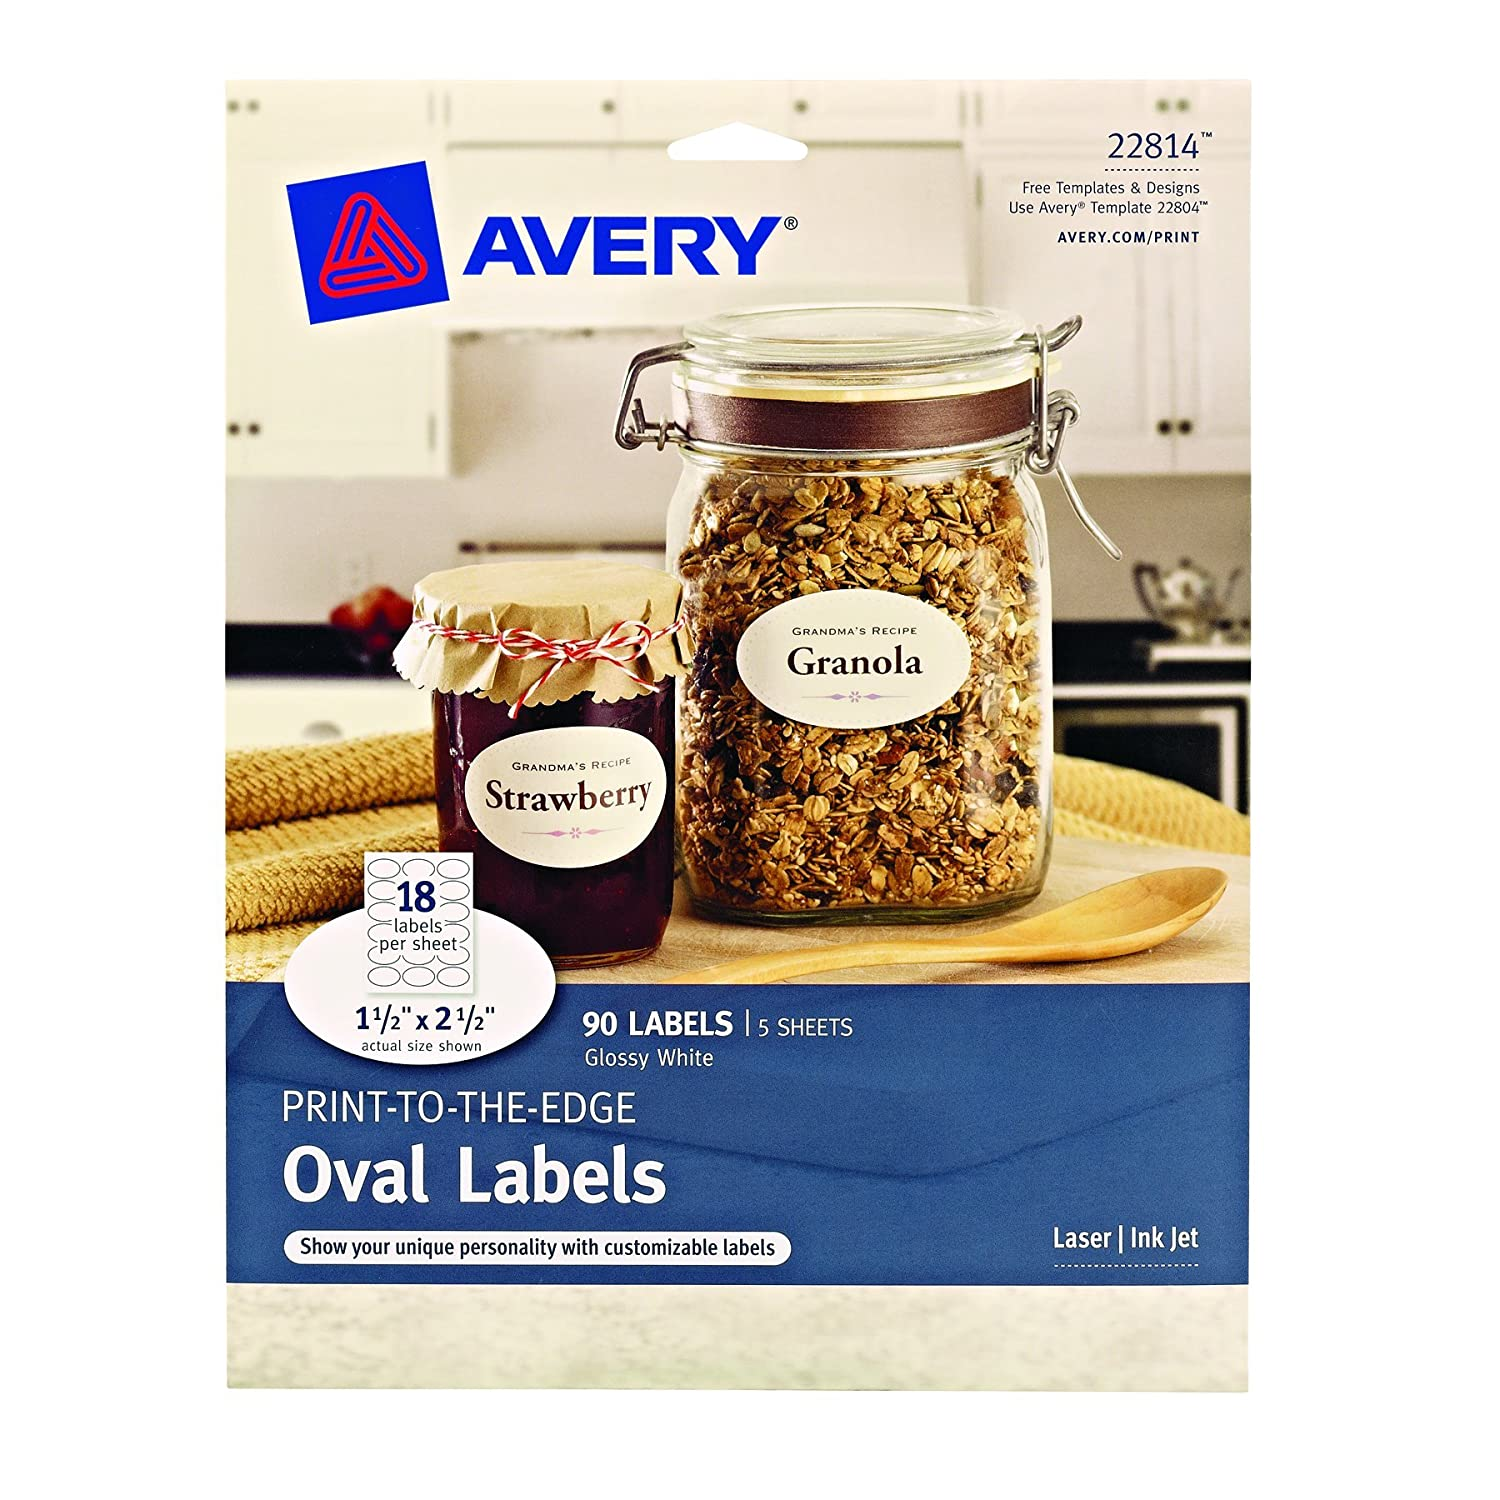 Amazon Avery Print To The Edge Oval Labels Glossy White 15